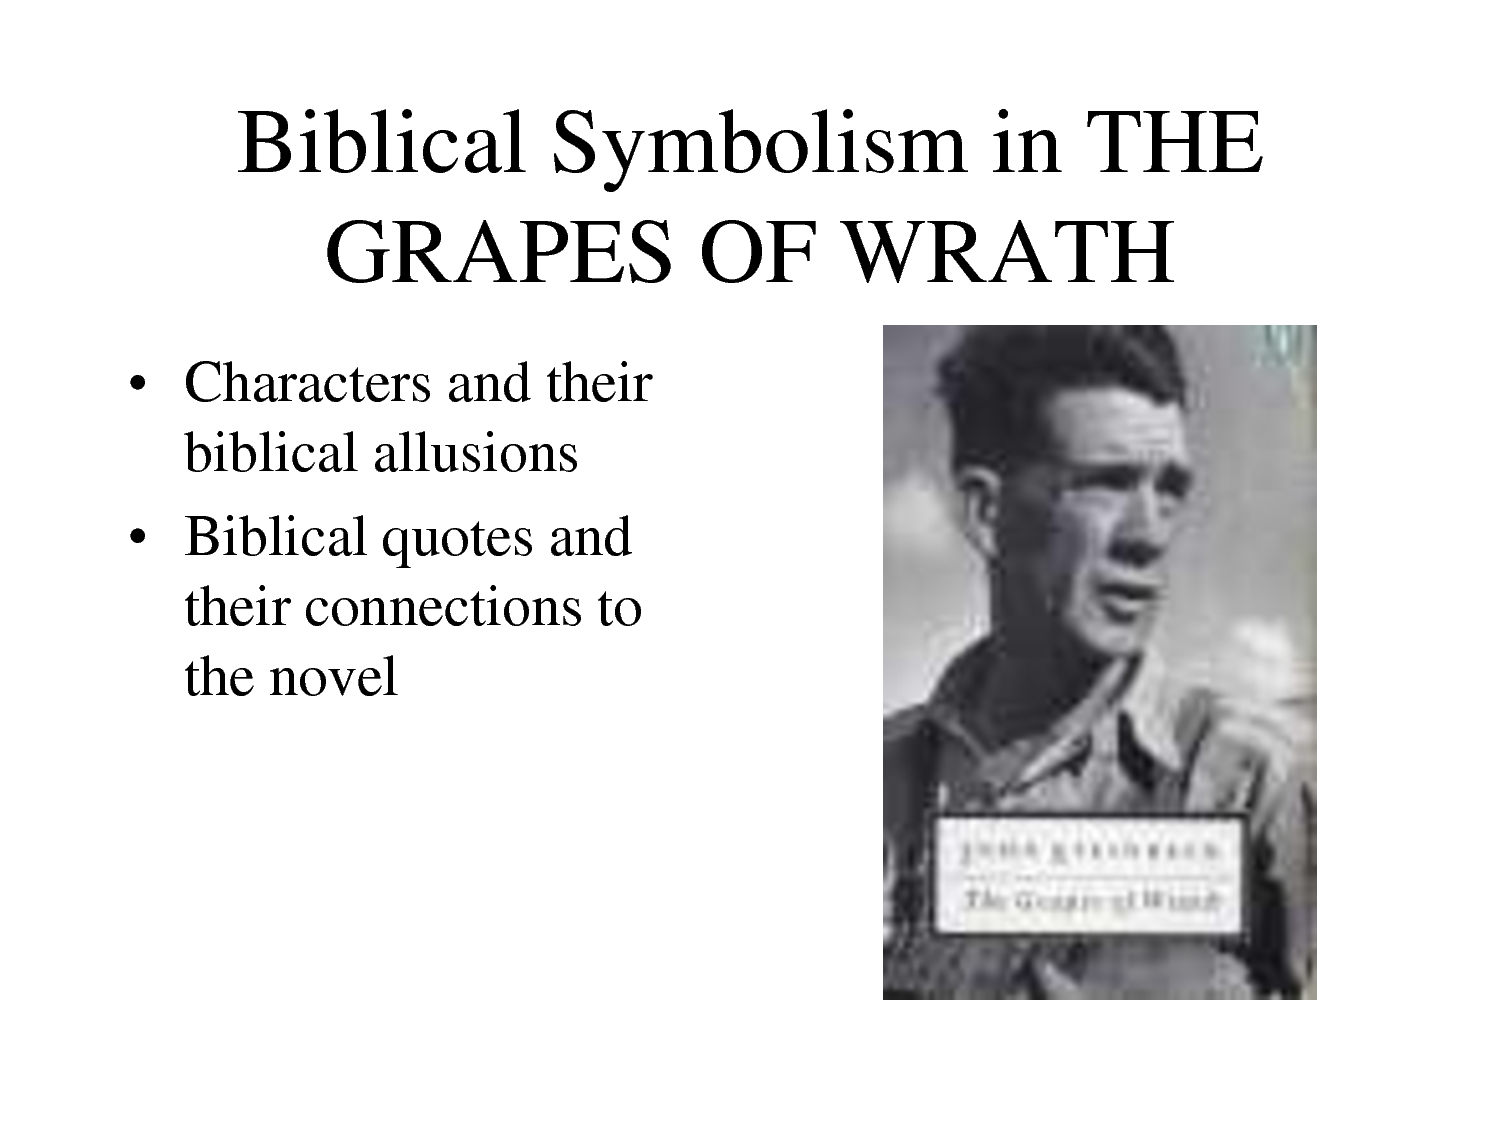 the biblical allusions in john steinbeck the grapes of wrath Category: the grapes of wrath john steinbeck title: steinbeck's biblical allusion in the grapes of wrath.